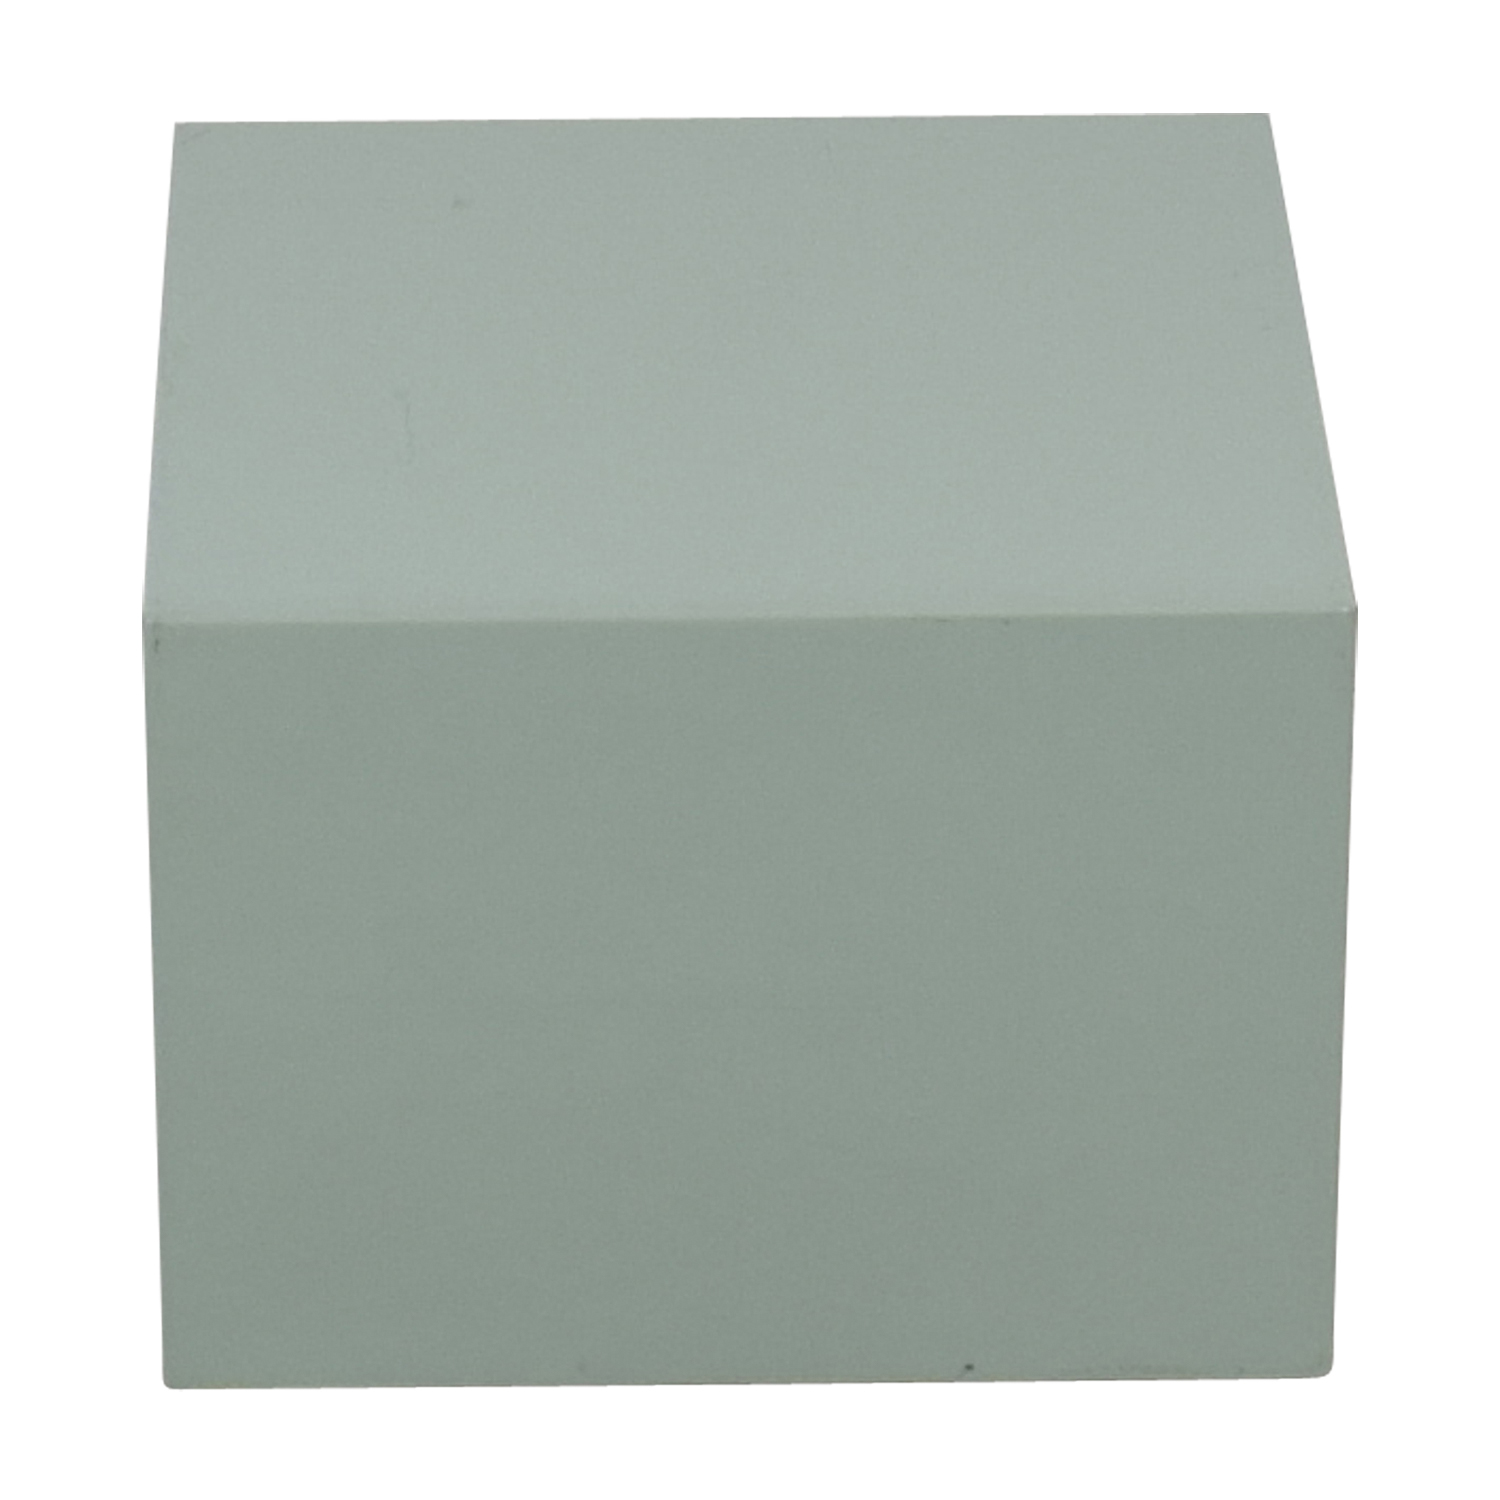 CB2 CB2 City Slicker Mint Green Side Table second hand